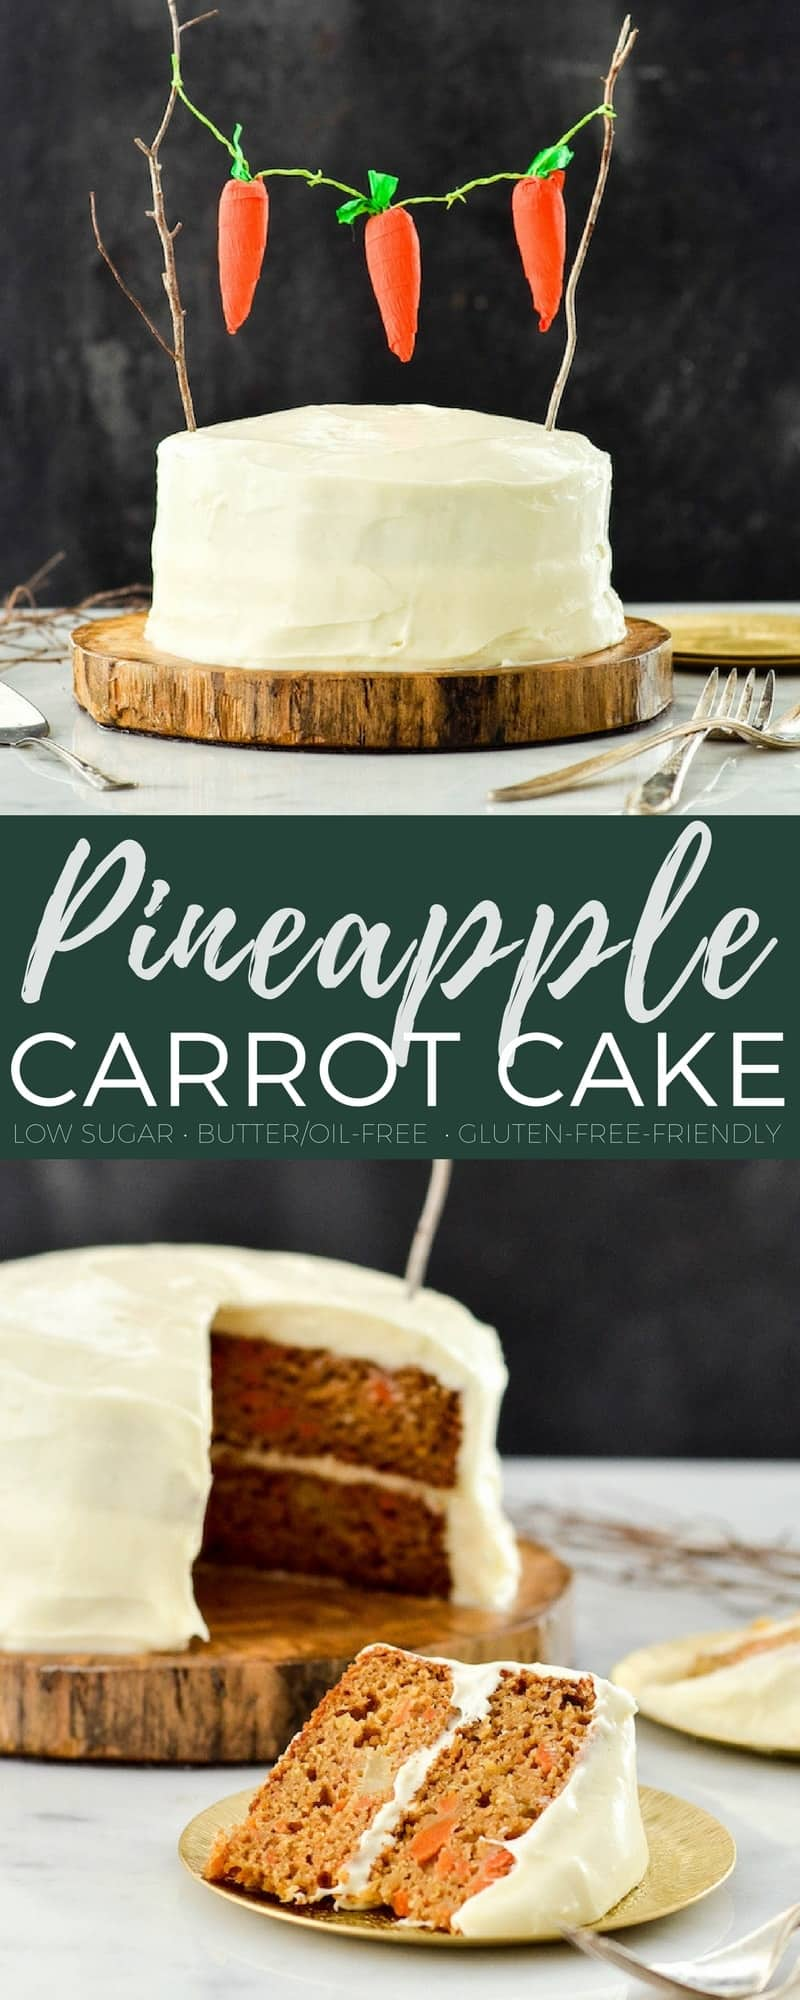 This Healthy Carrot Pineapple Cake is a lightened-up version of everyone's favorite spring dessert! It is low-sugar, has no butter or oil and can easily be made gluten-free! #carrotcake #dessert #healthyrecipe #recipe #dairyfree #oilfree